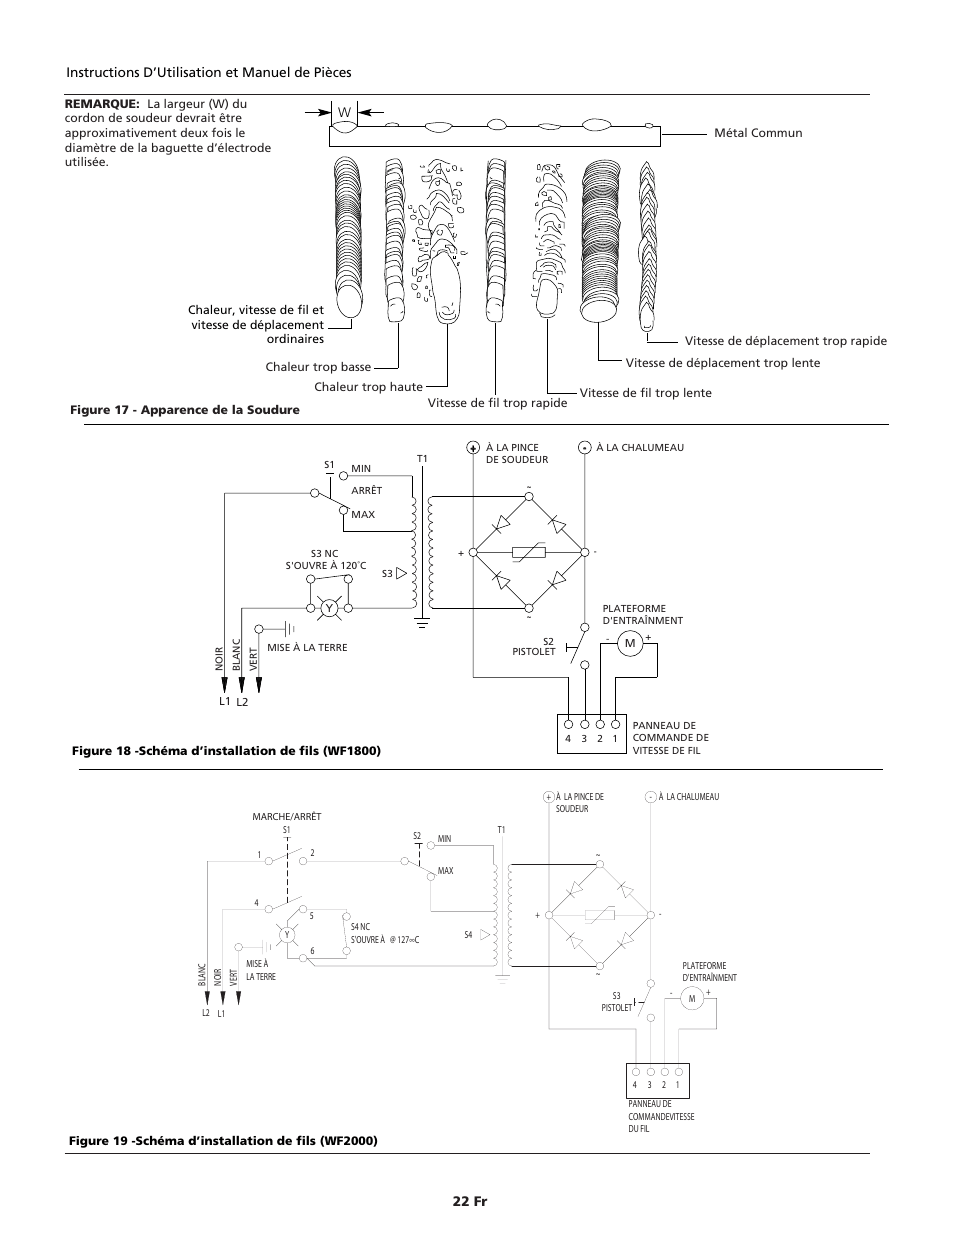 hight resolution of campbell hausfeld wiring diagram wiring library campbell hausfeld wire feed wf1900 user manual page 22 40